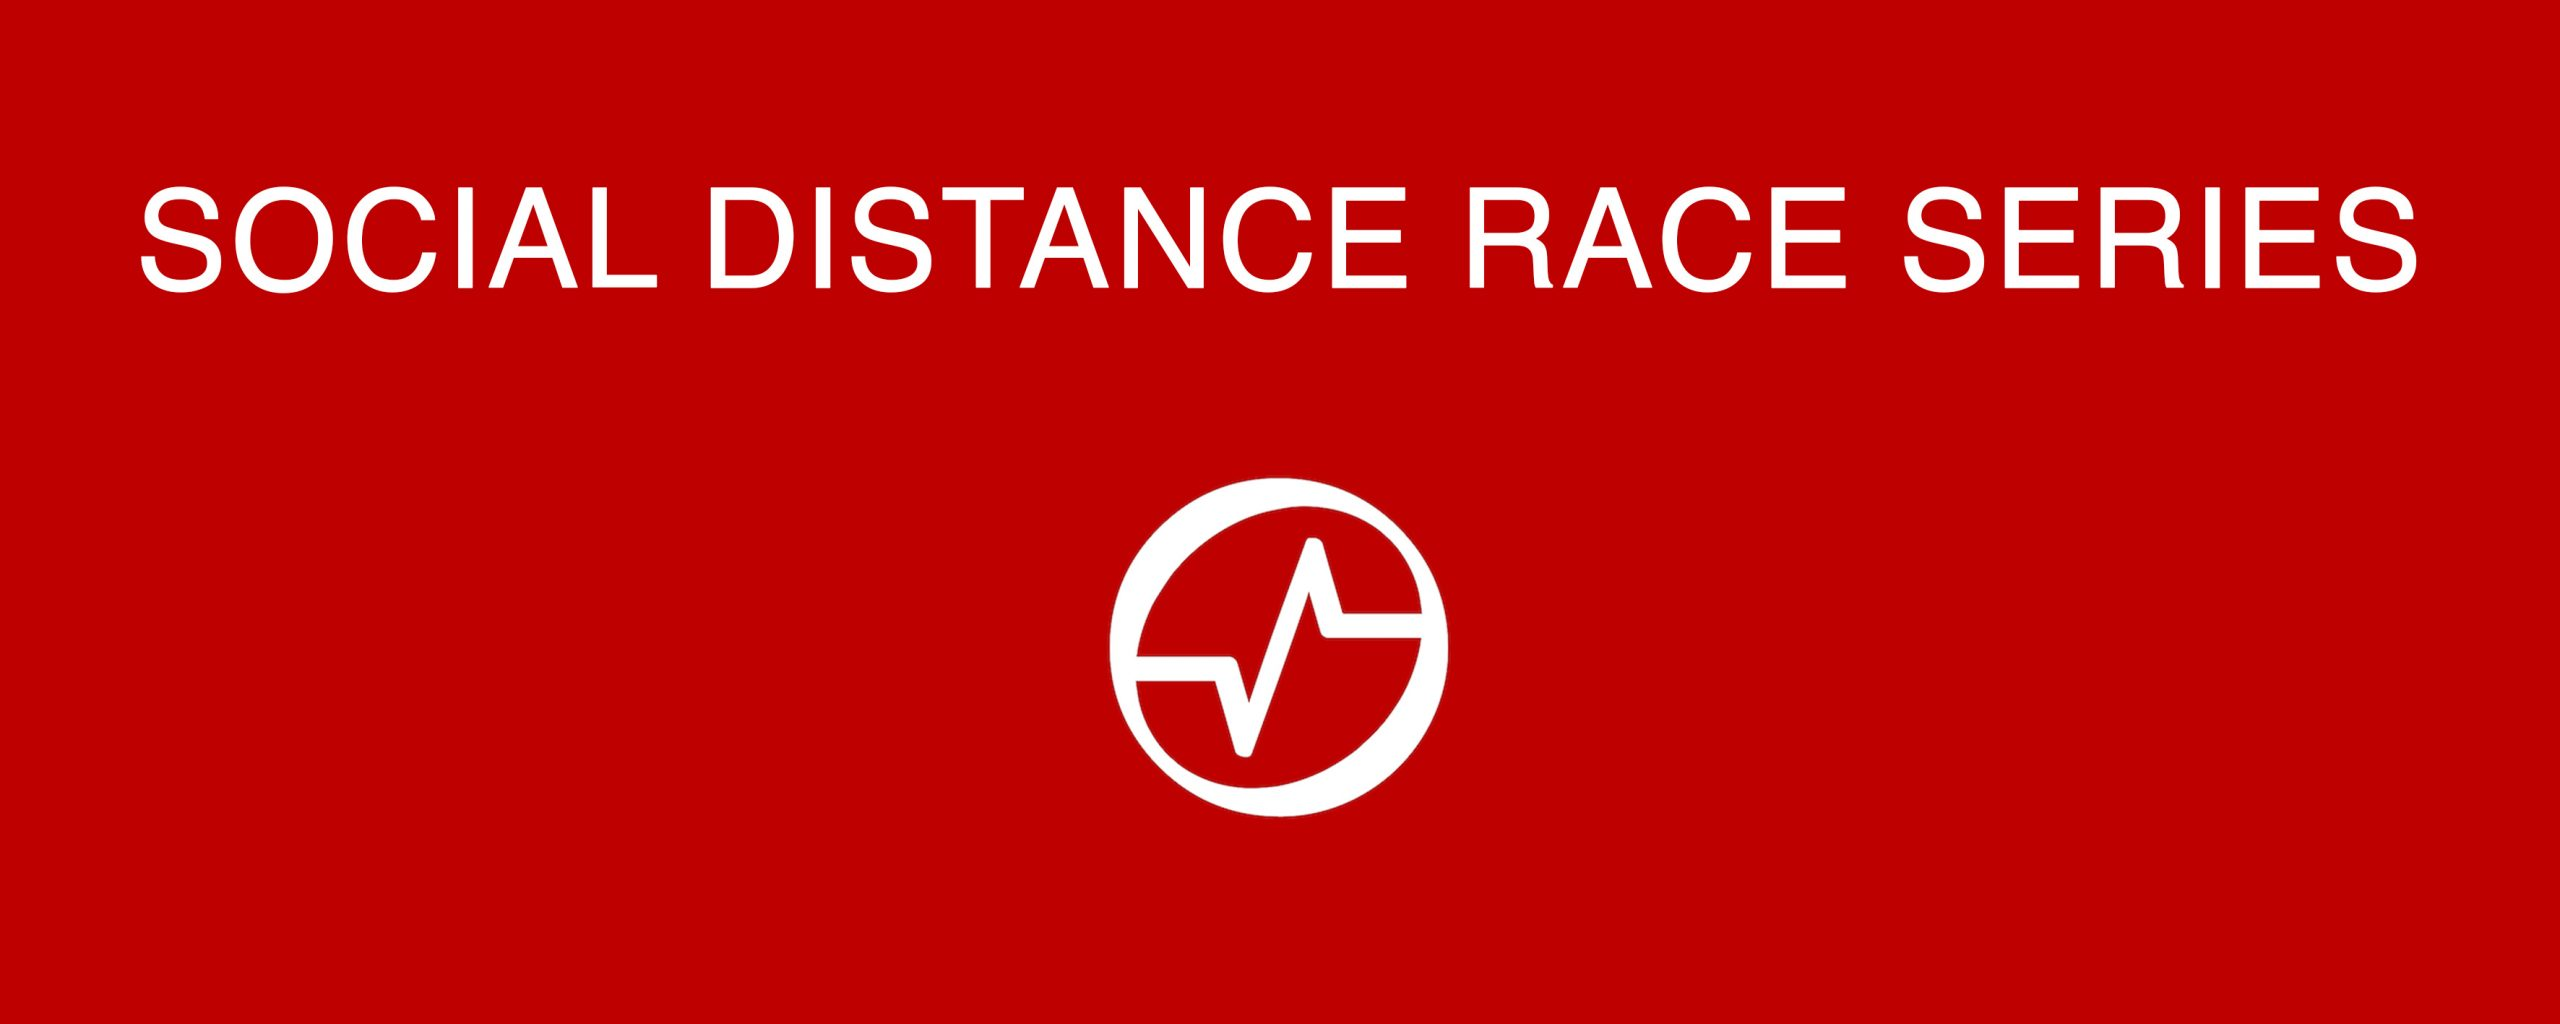 social distance race series